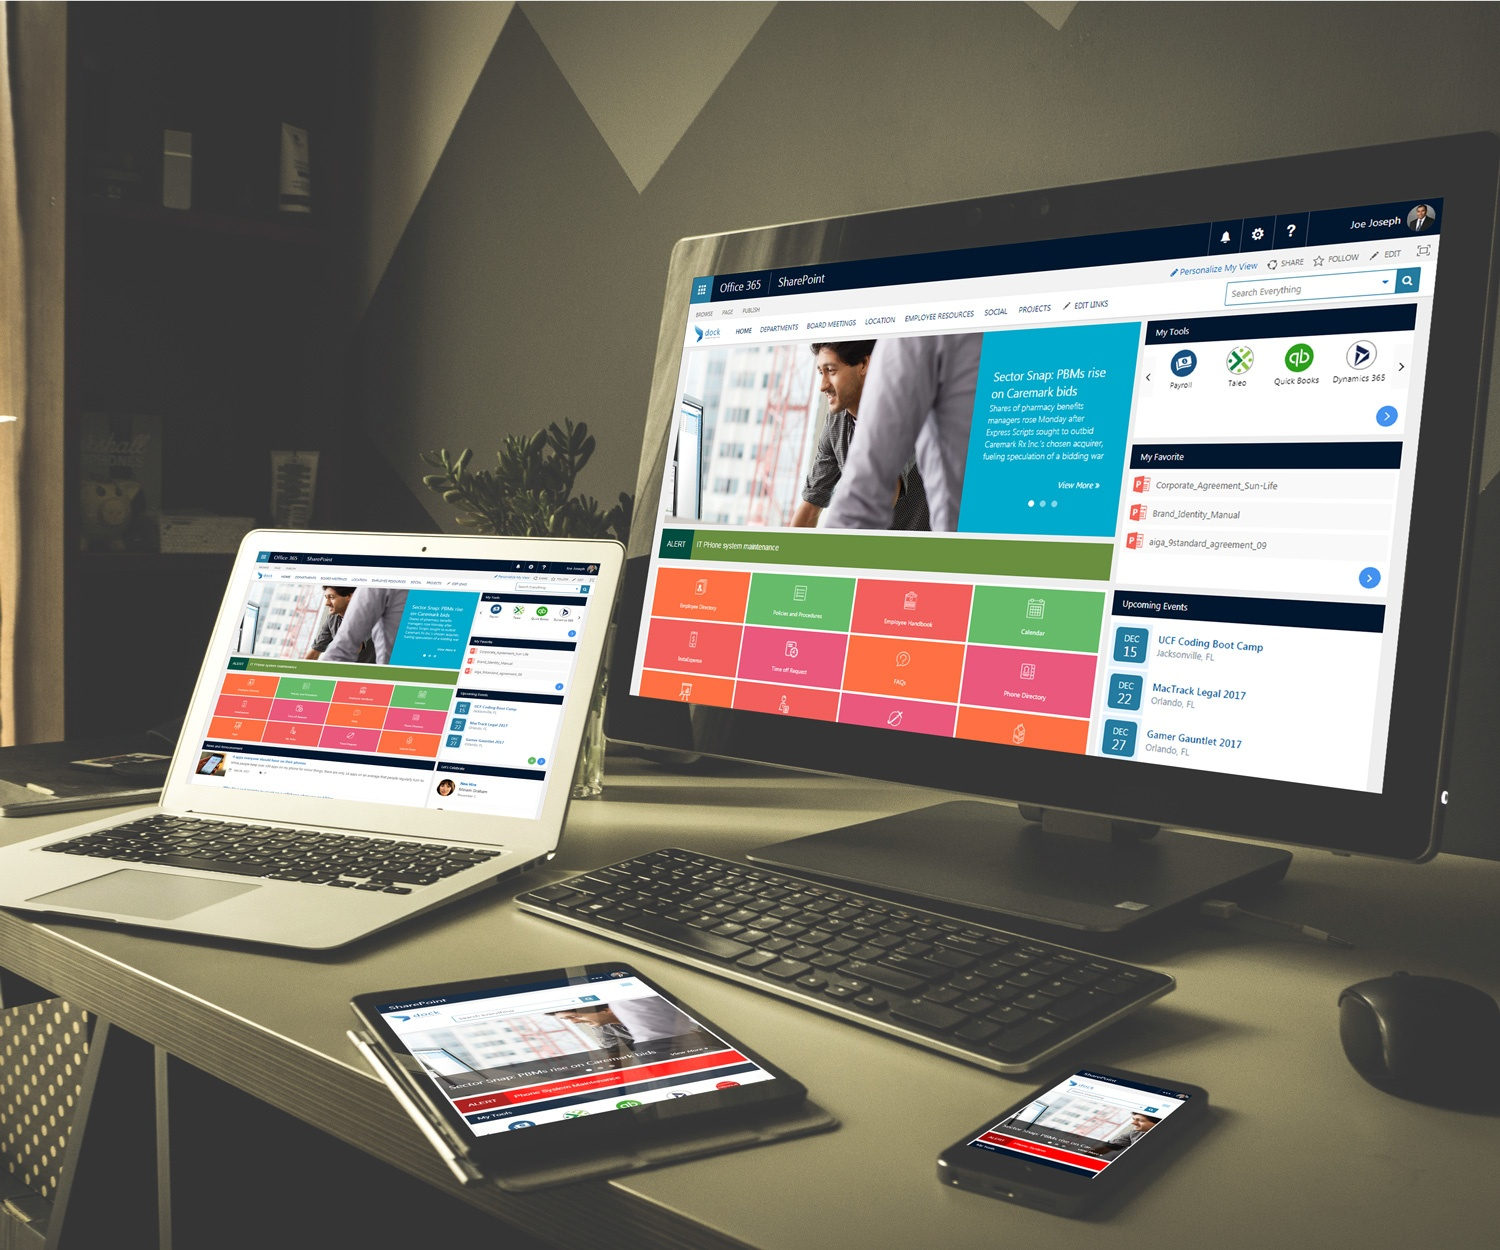 intranet-portal-multiscreens.jpg